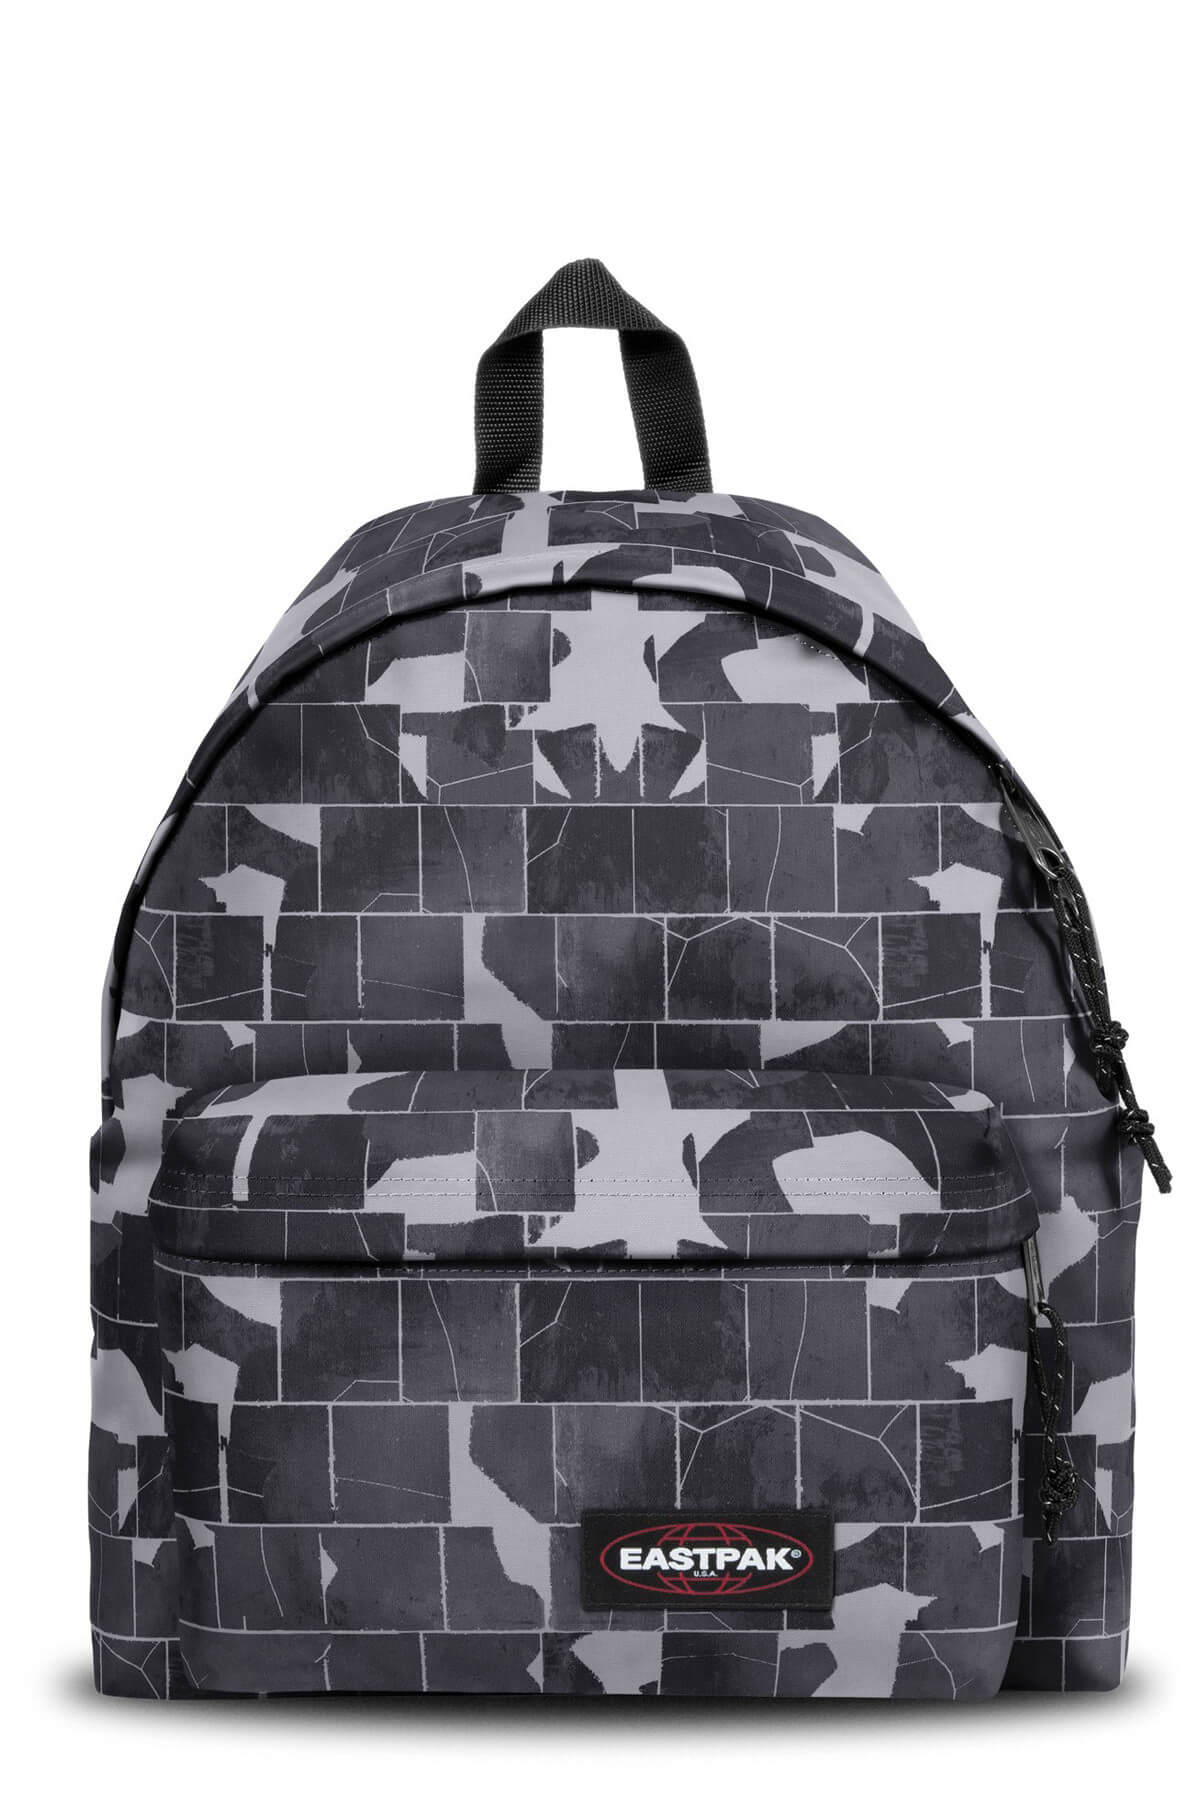 2582a6acb1fbe Eastpak Padded Pak'R Cracked Dark Sırt Çantası Ek62068T Cracked Dark ...